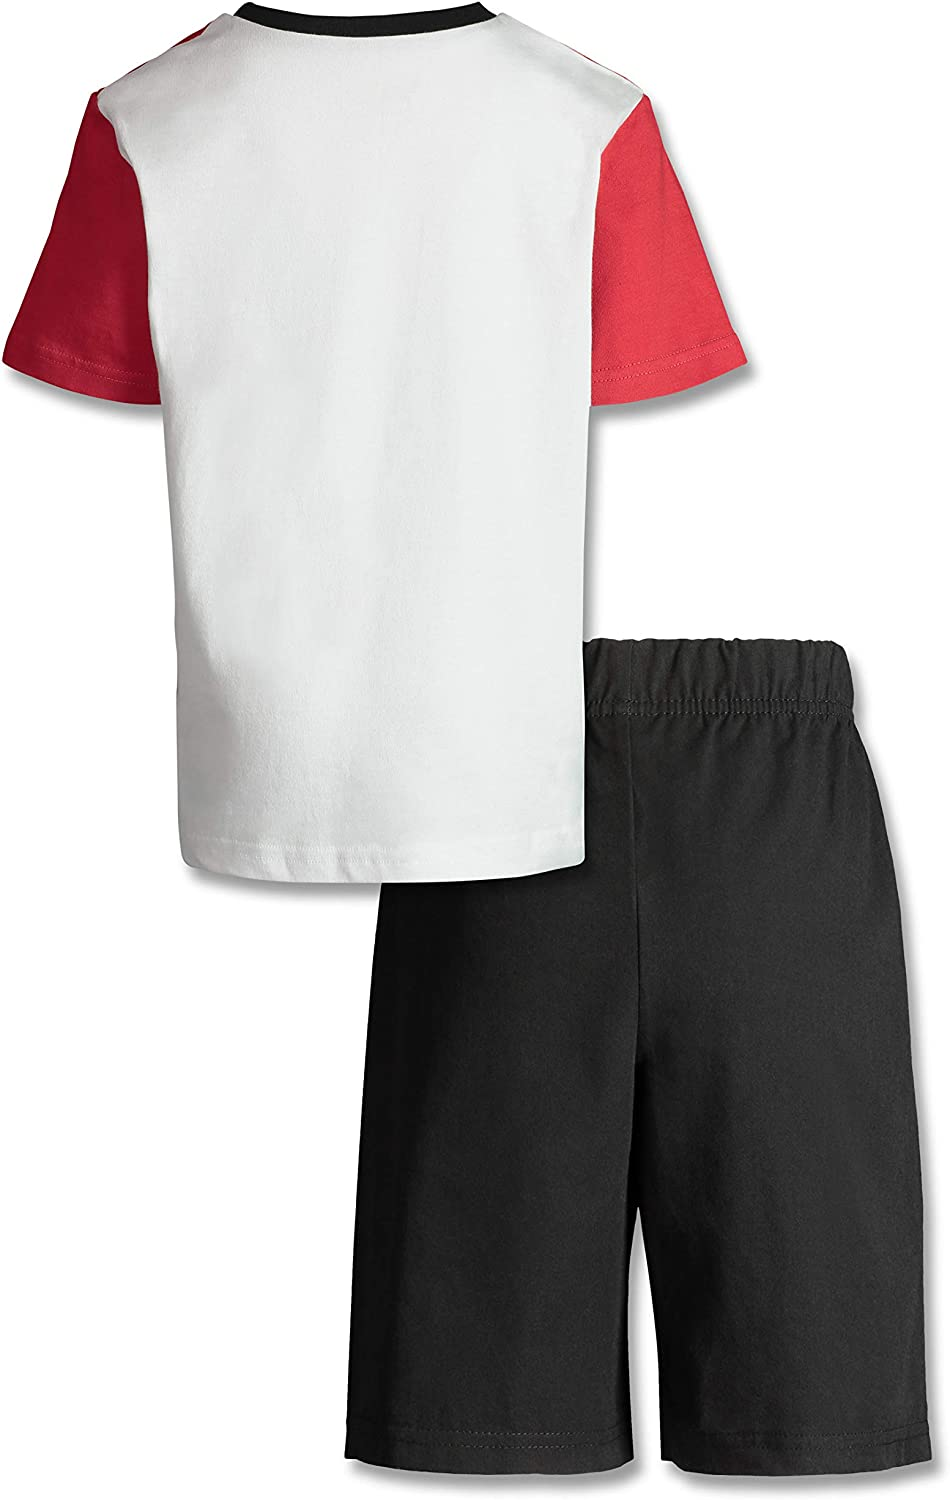 Marvel Spiderman Boys T-Shirt and French Terry Shorts Set